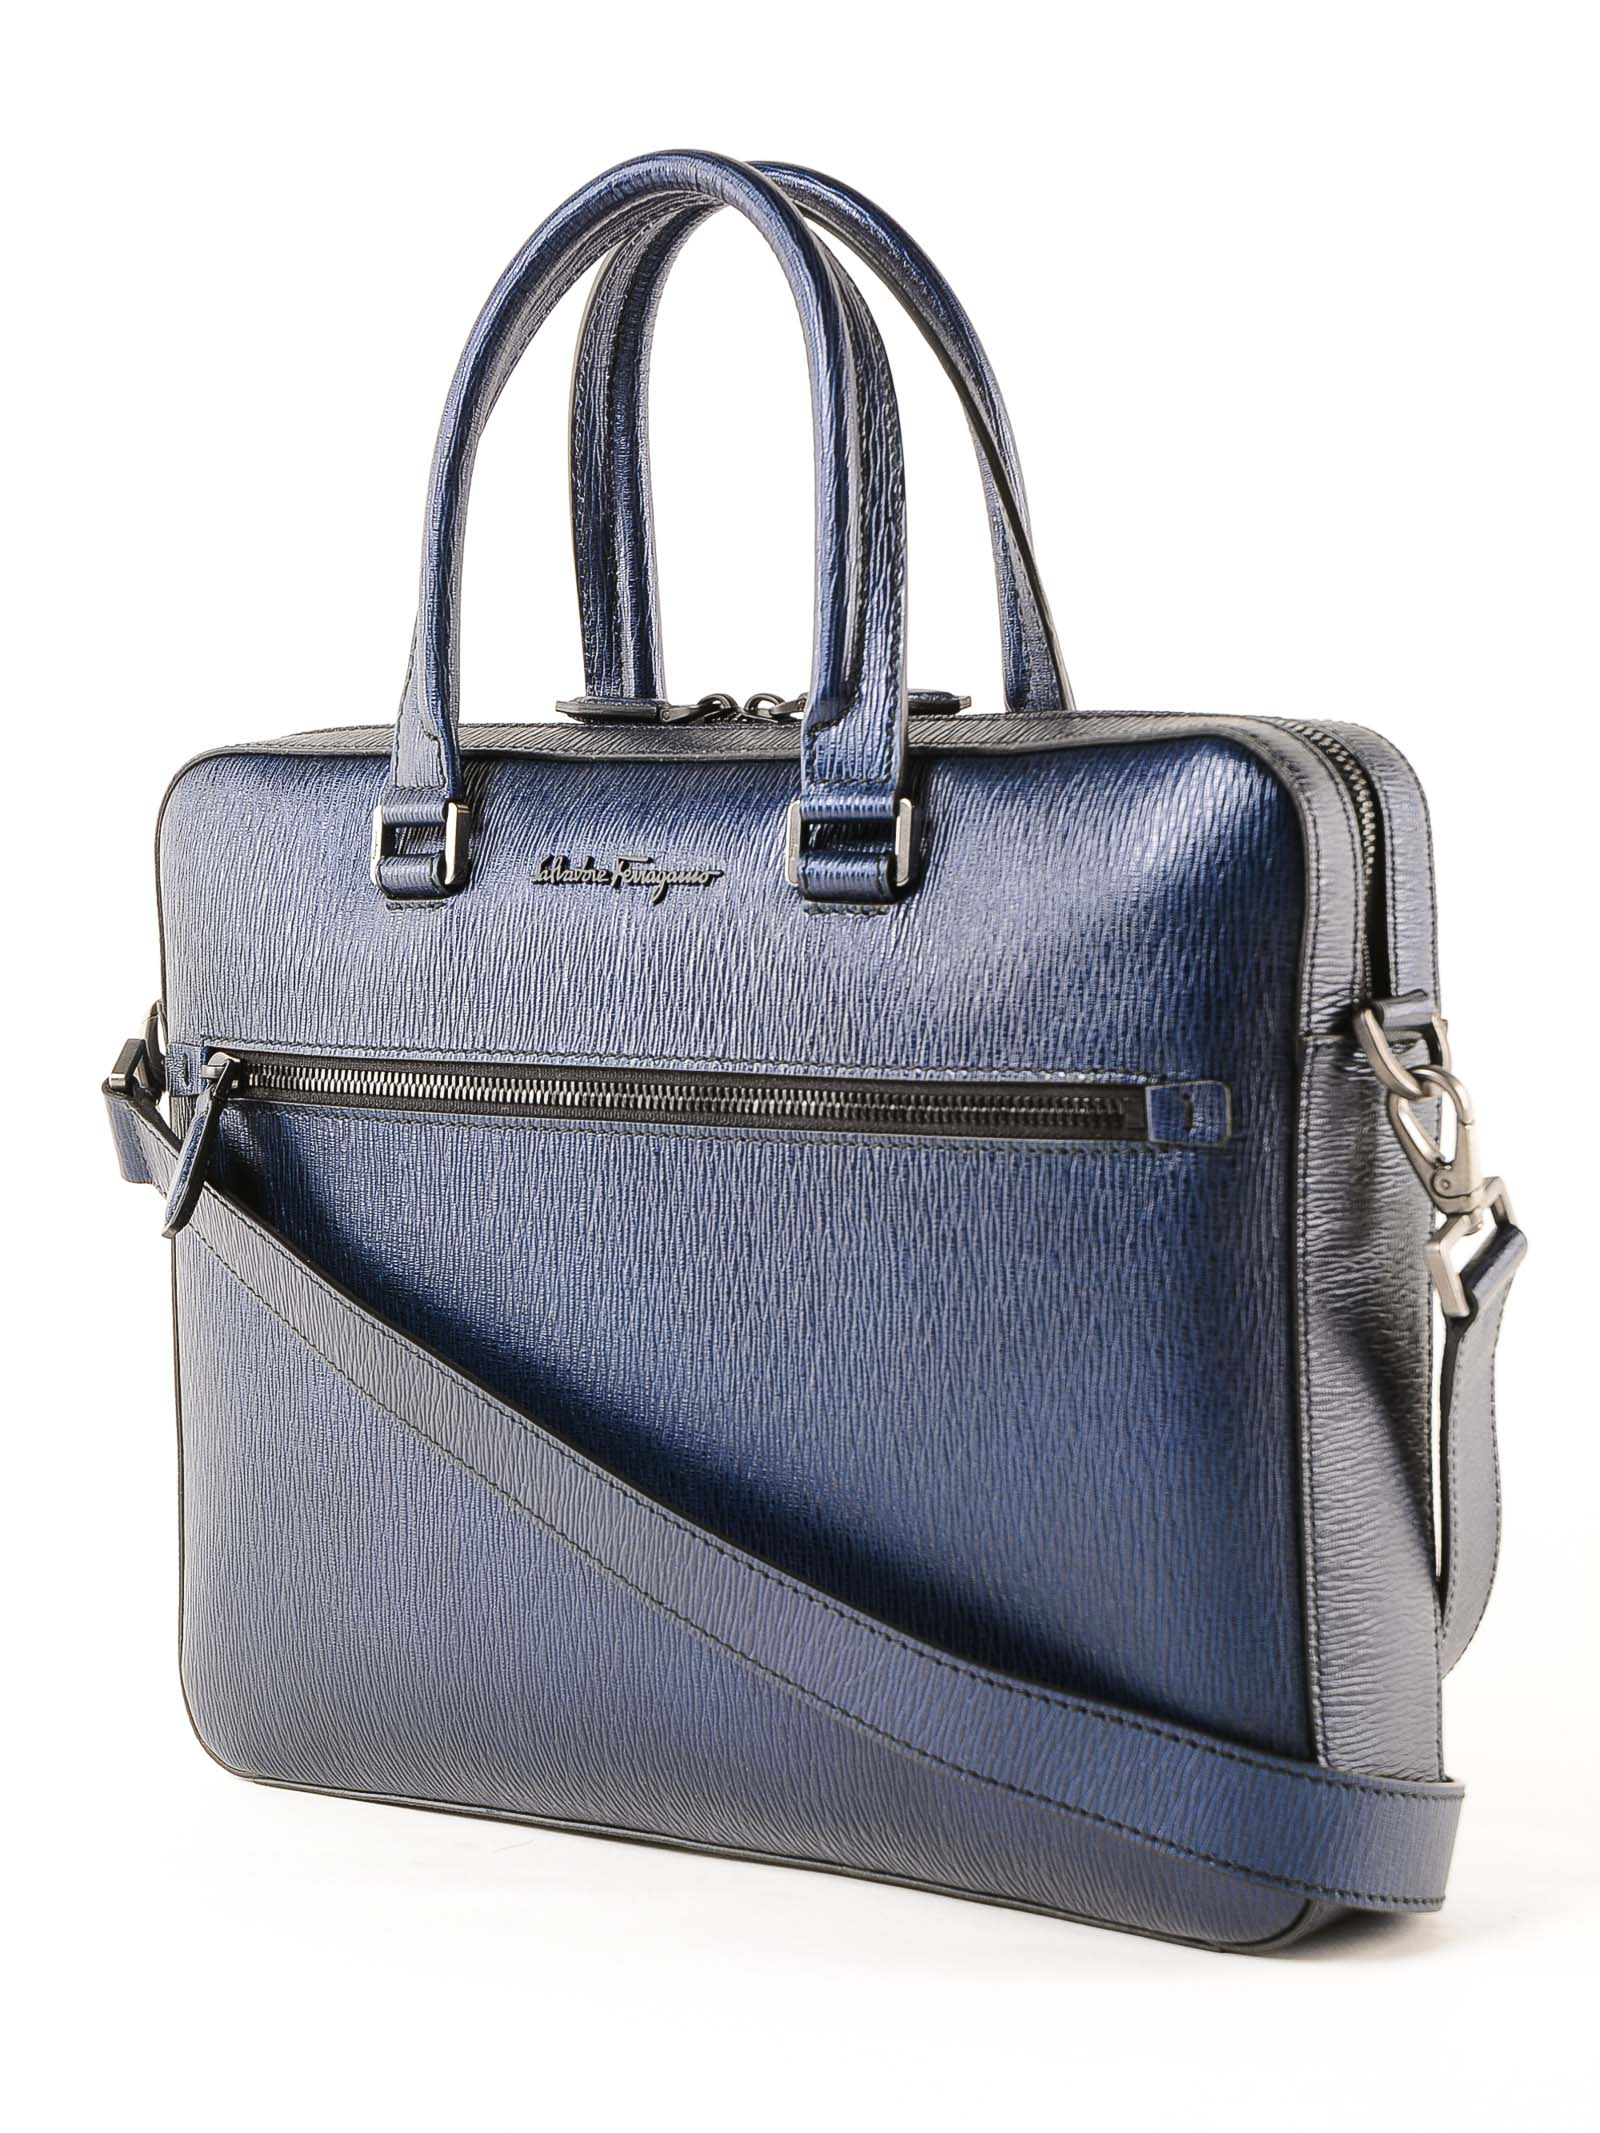 6a5049b526 Salvatore Ferragamo Revival Metal Briefcase - Blue Salvatore Ferragamo  Revival Metal Briefcase - Blue ...